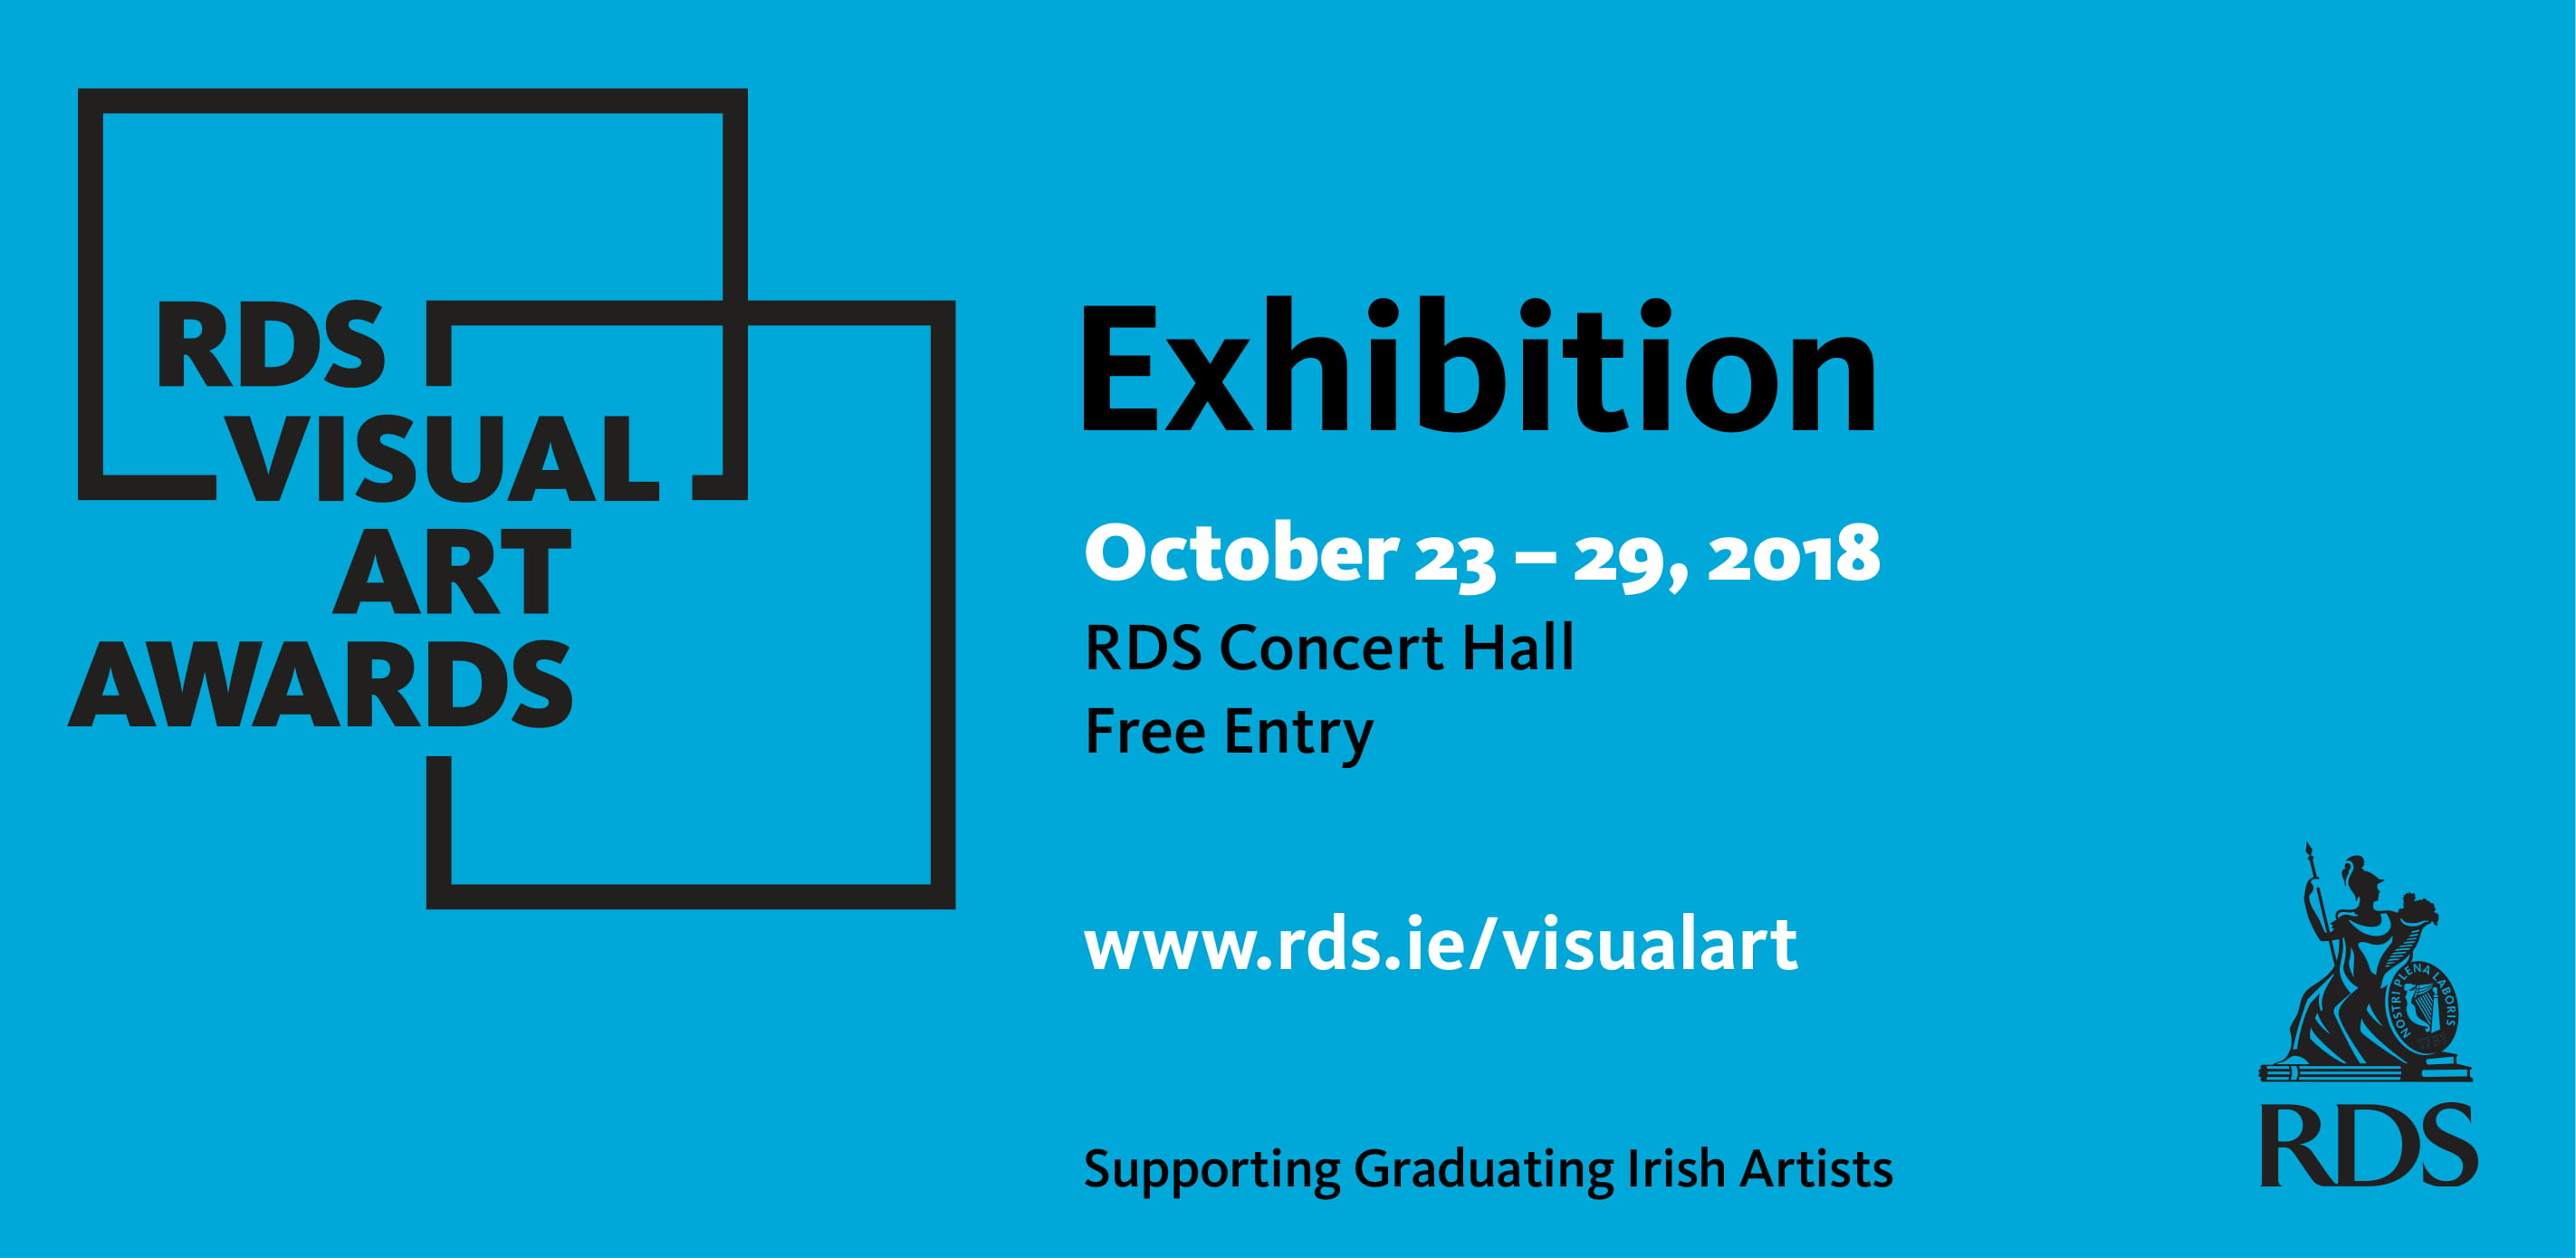 RDS Visual Art Award Winners 2018 Announced